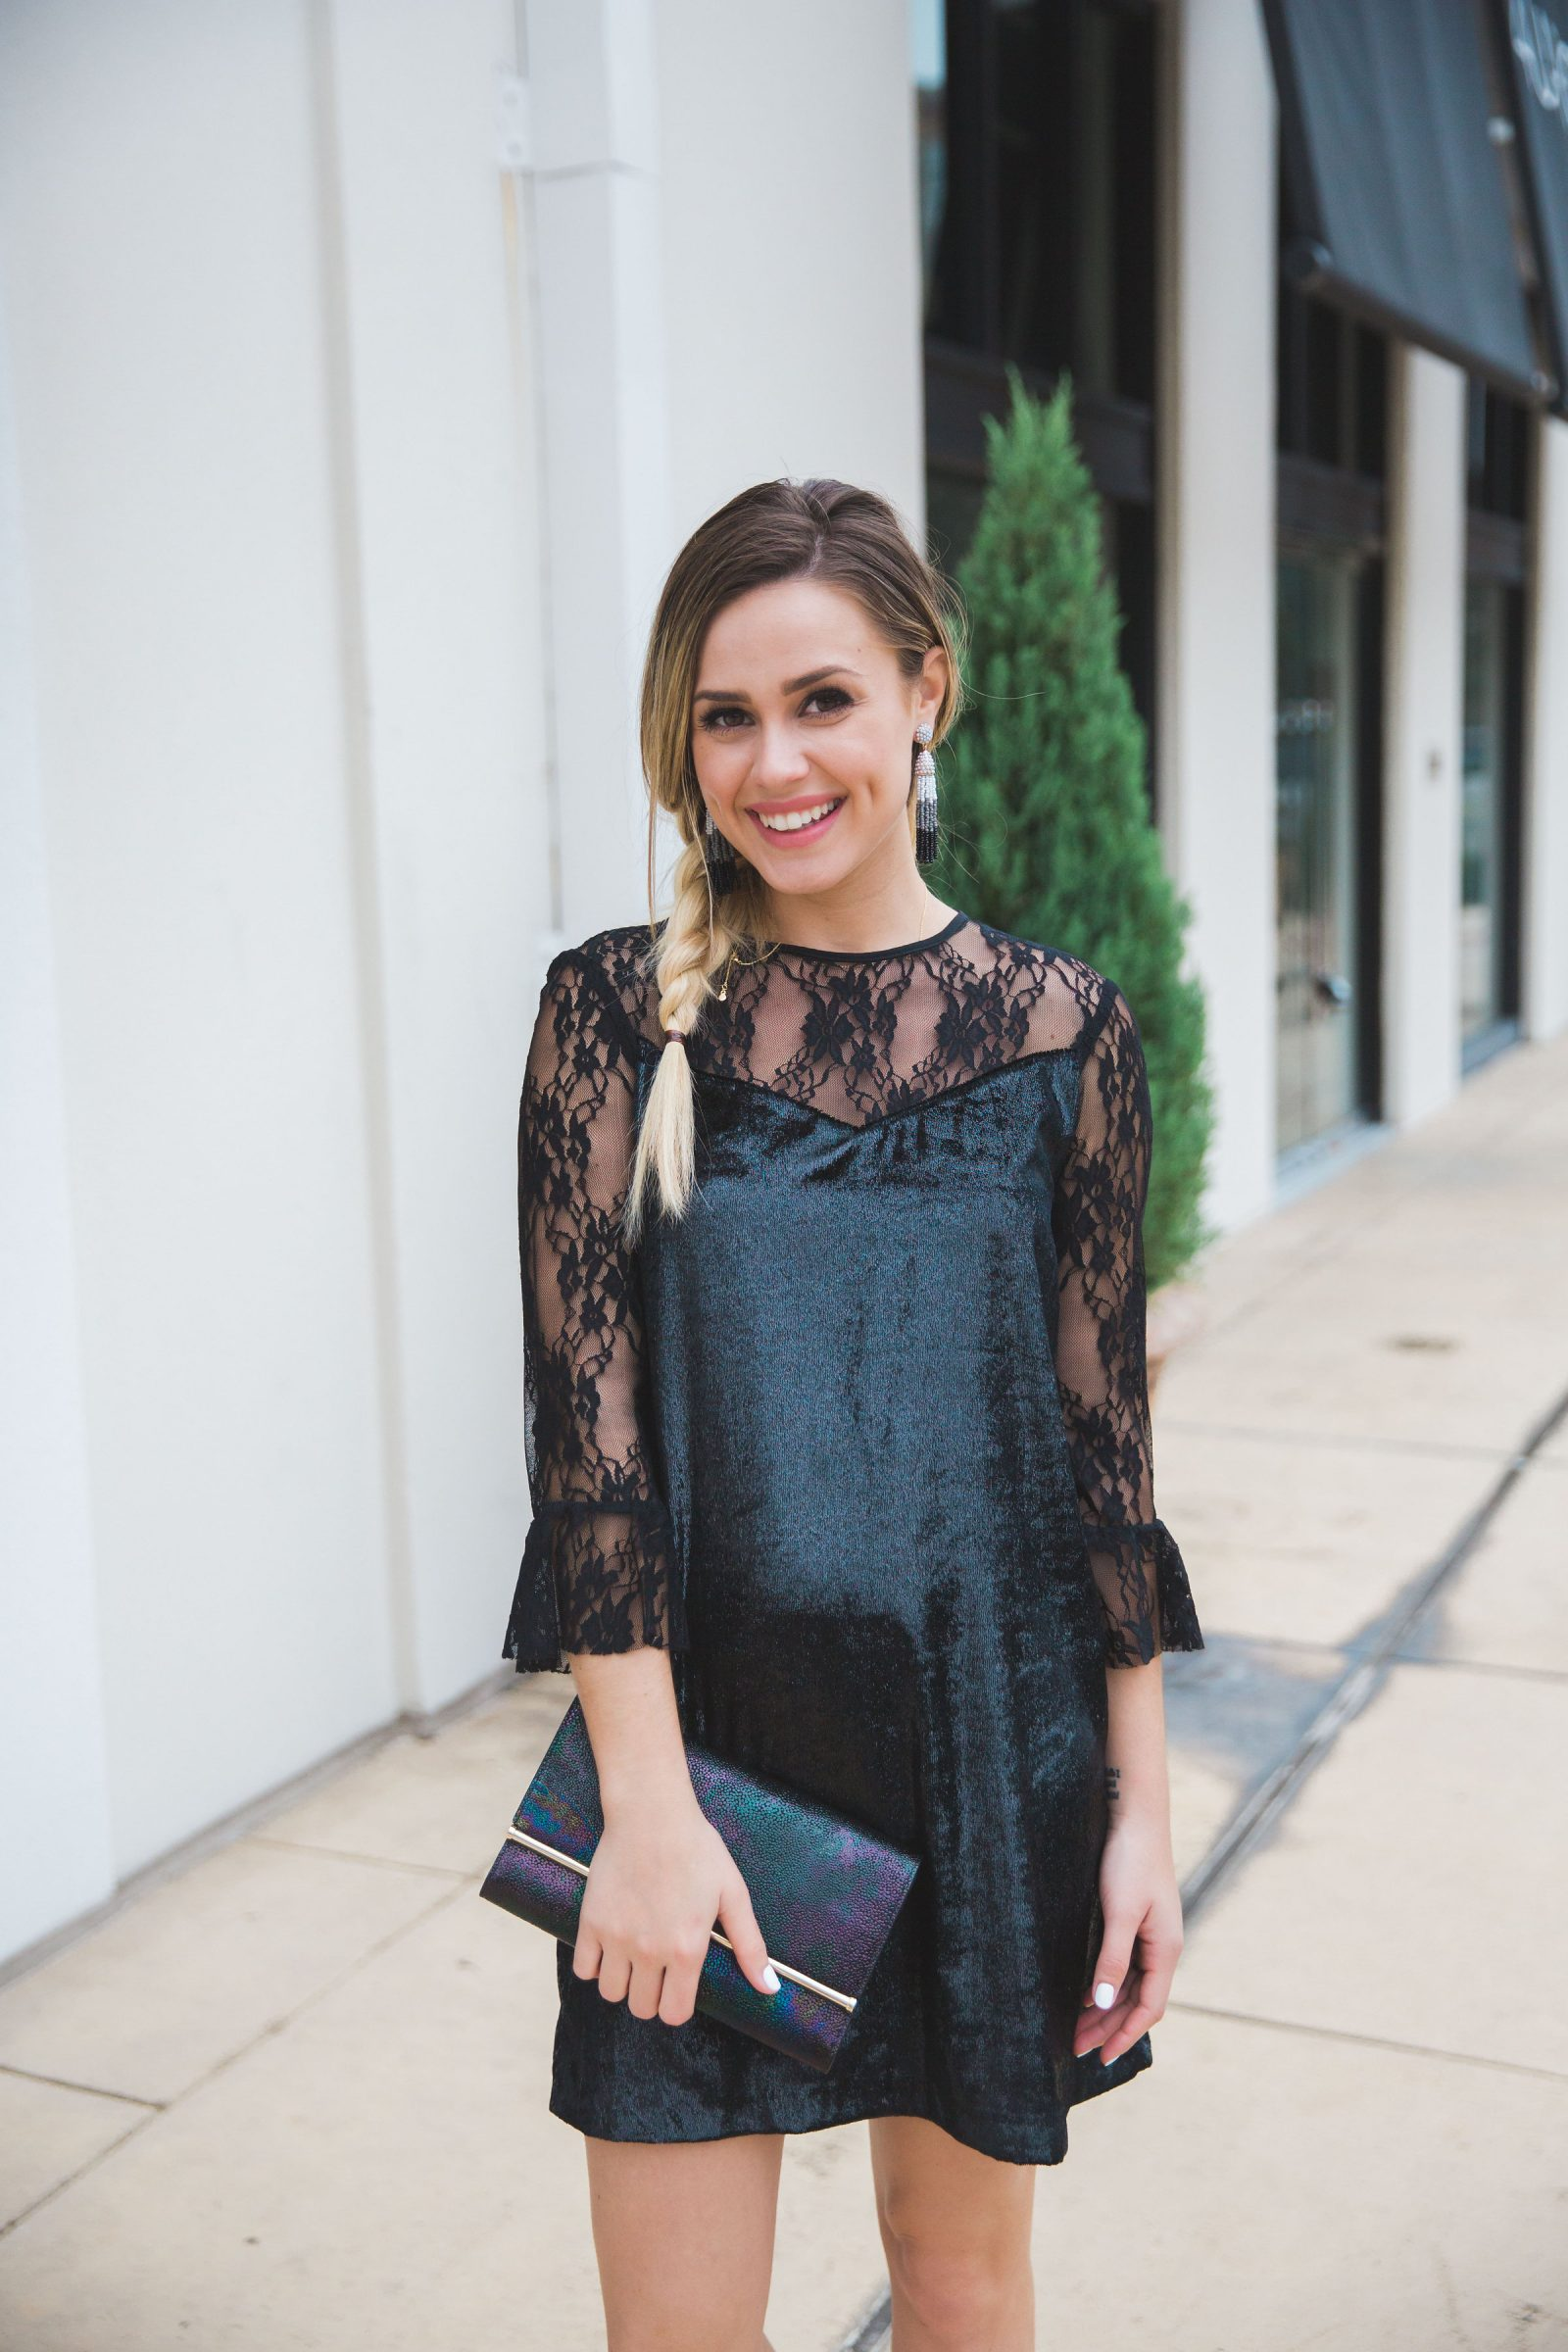 Holiday Dress Idea   Holiday outfits   What to wear for the Holidays   Holiday dress under $50   Uptown with Elly Brown